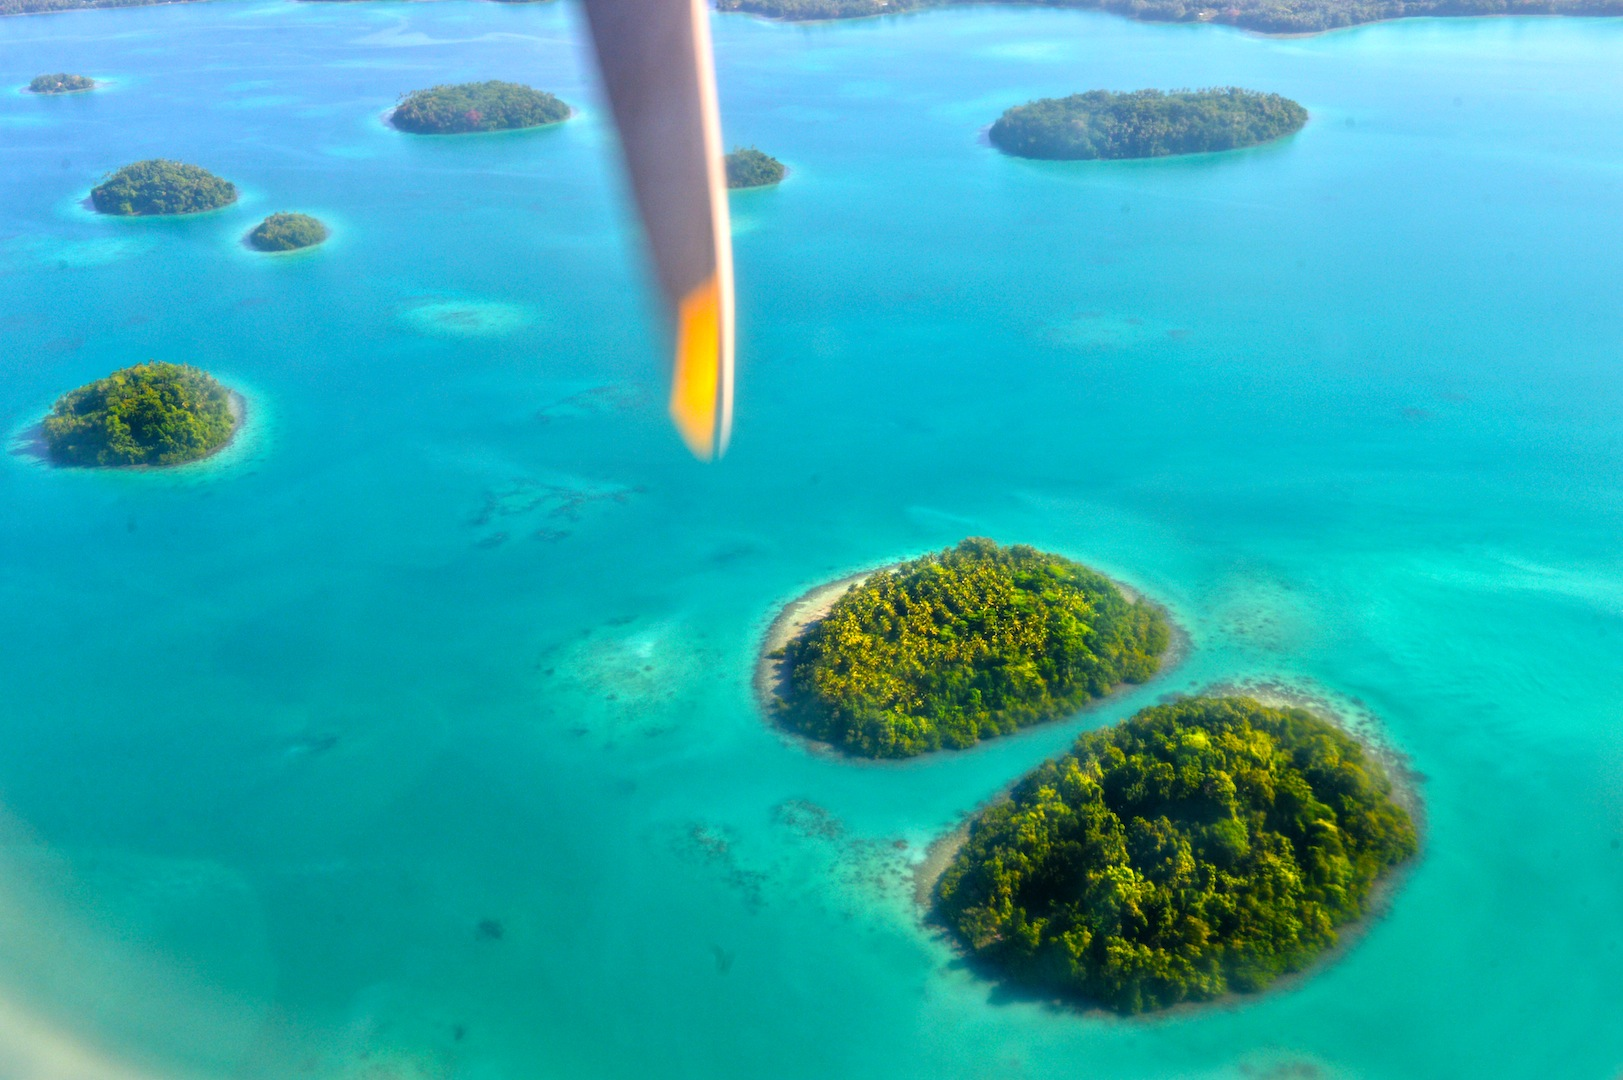 Aerial view – Vona Vona Lagoon, Munda, Western Province - Photo credit to Solomon Islands Visitors Bureau (SIVB)